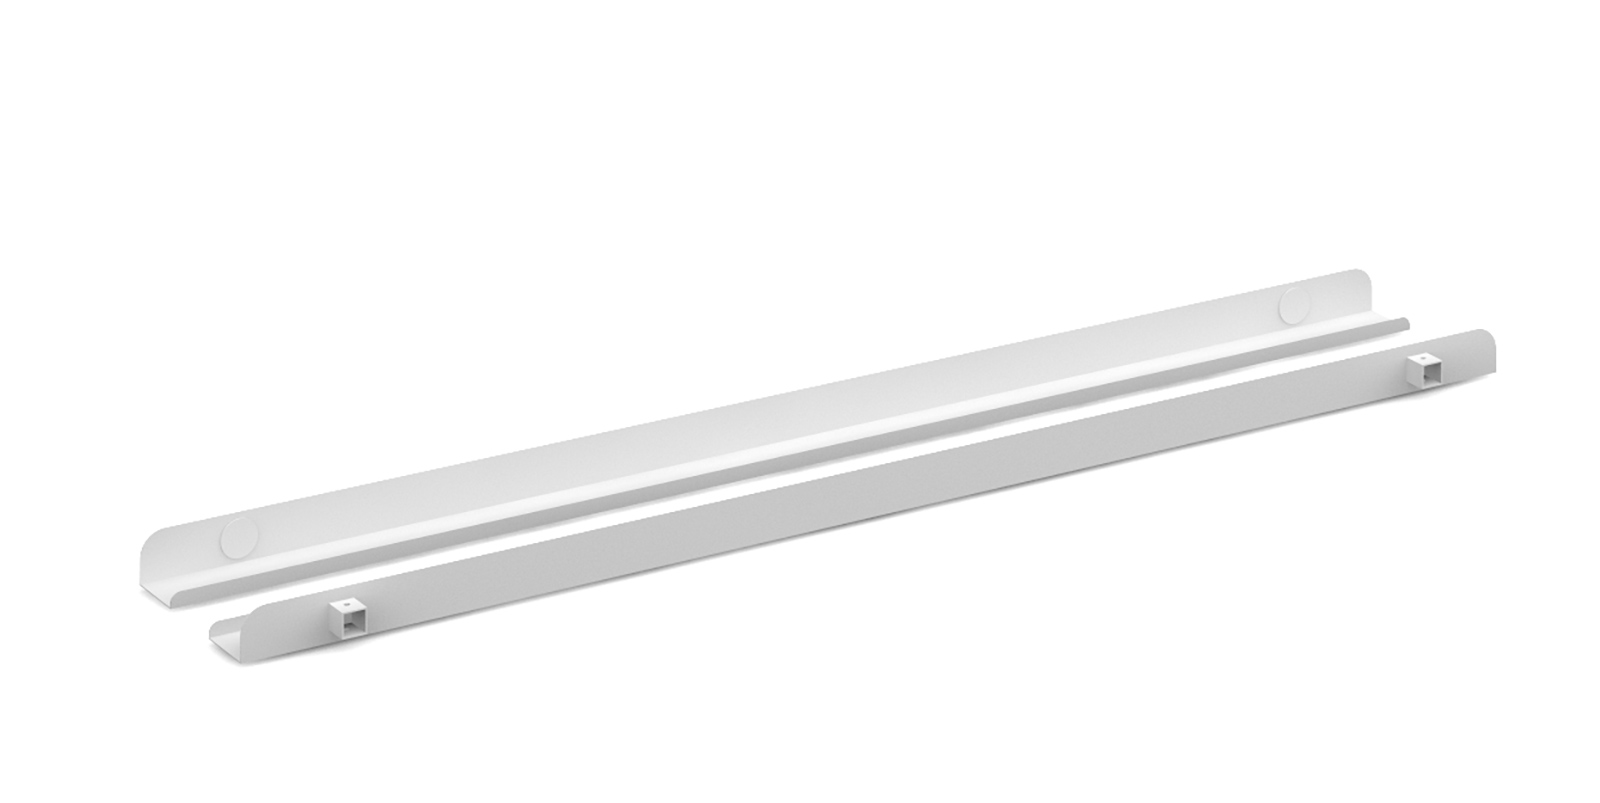 Connex Single Cable Tray 1200mm in white